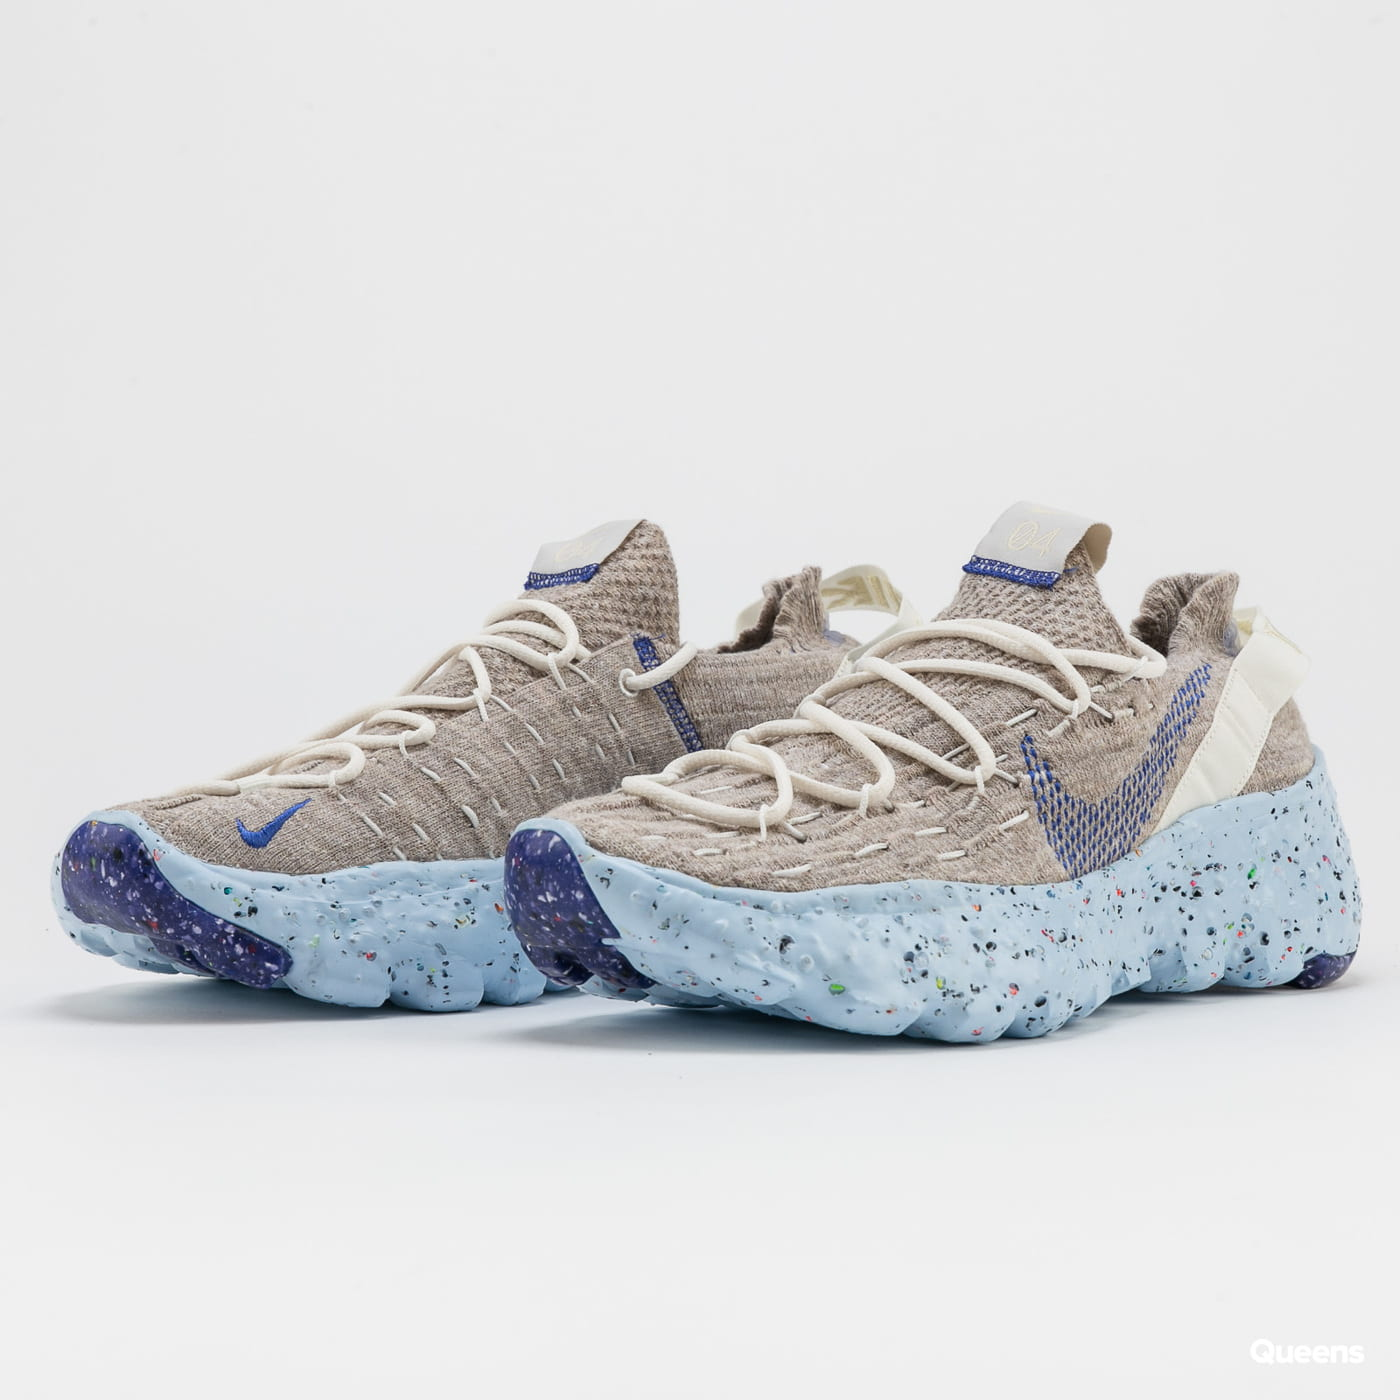 Nike Space Hippie 04 sail / astronomy blue - fossil